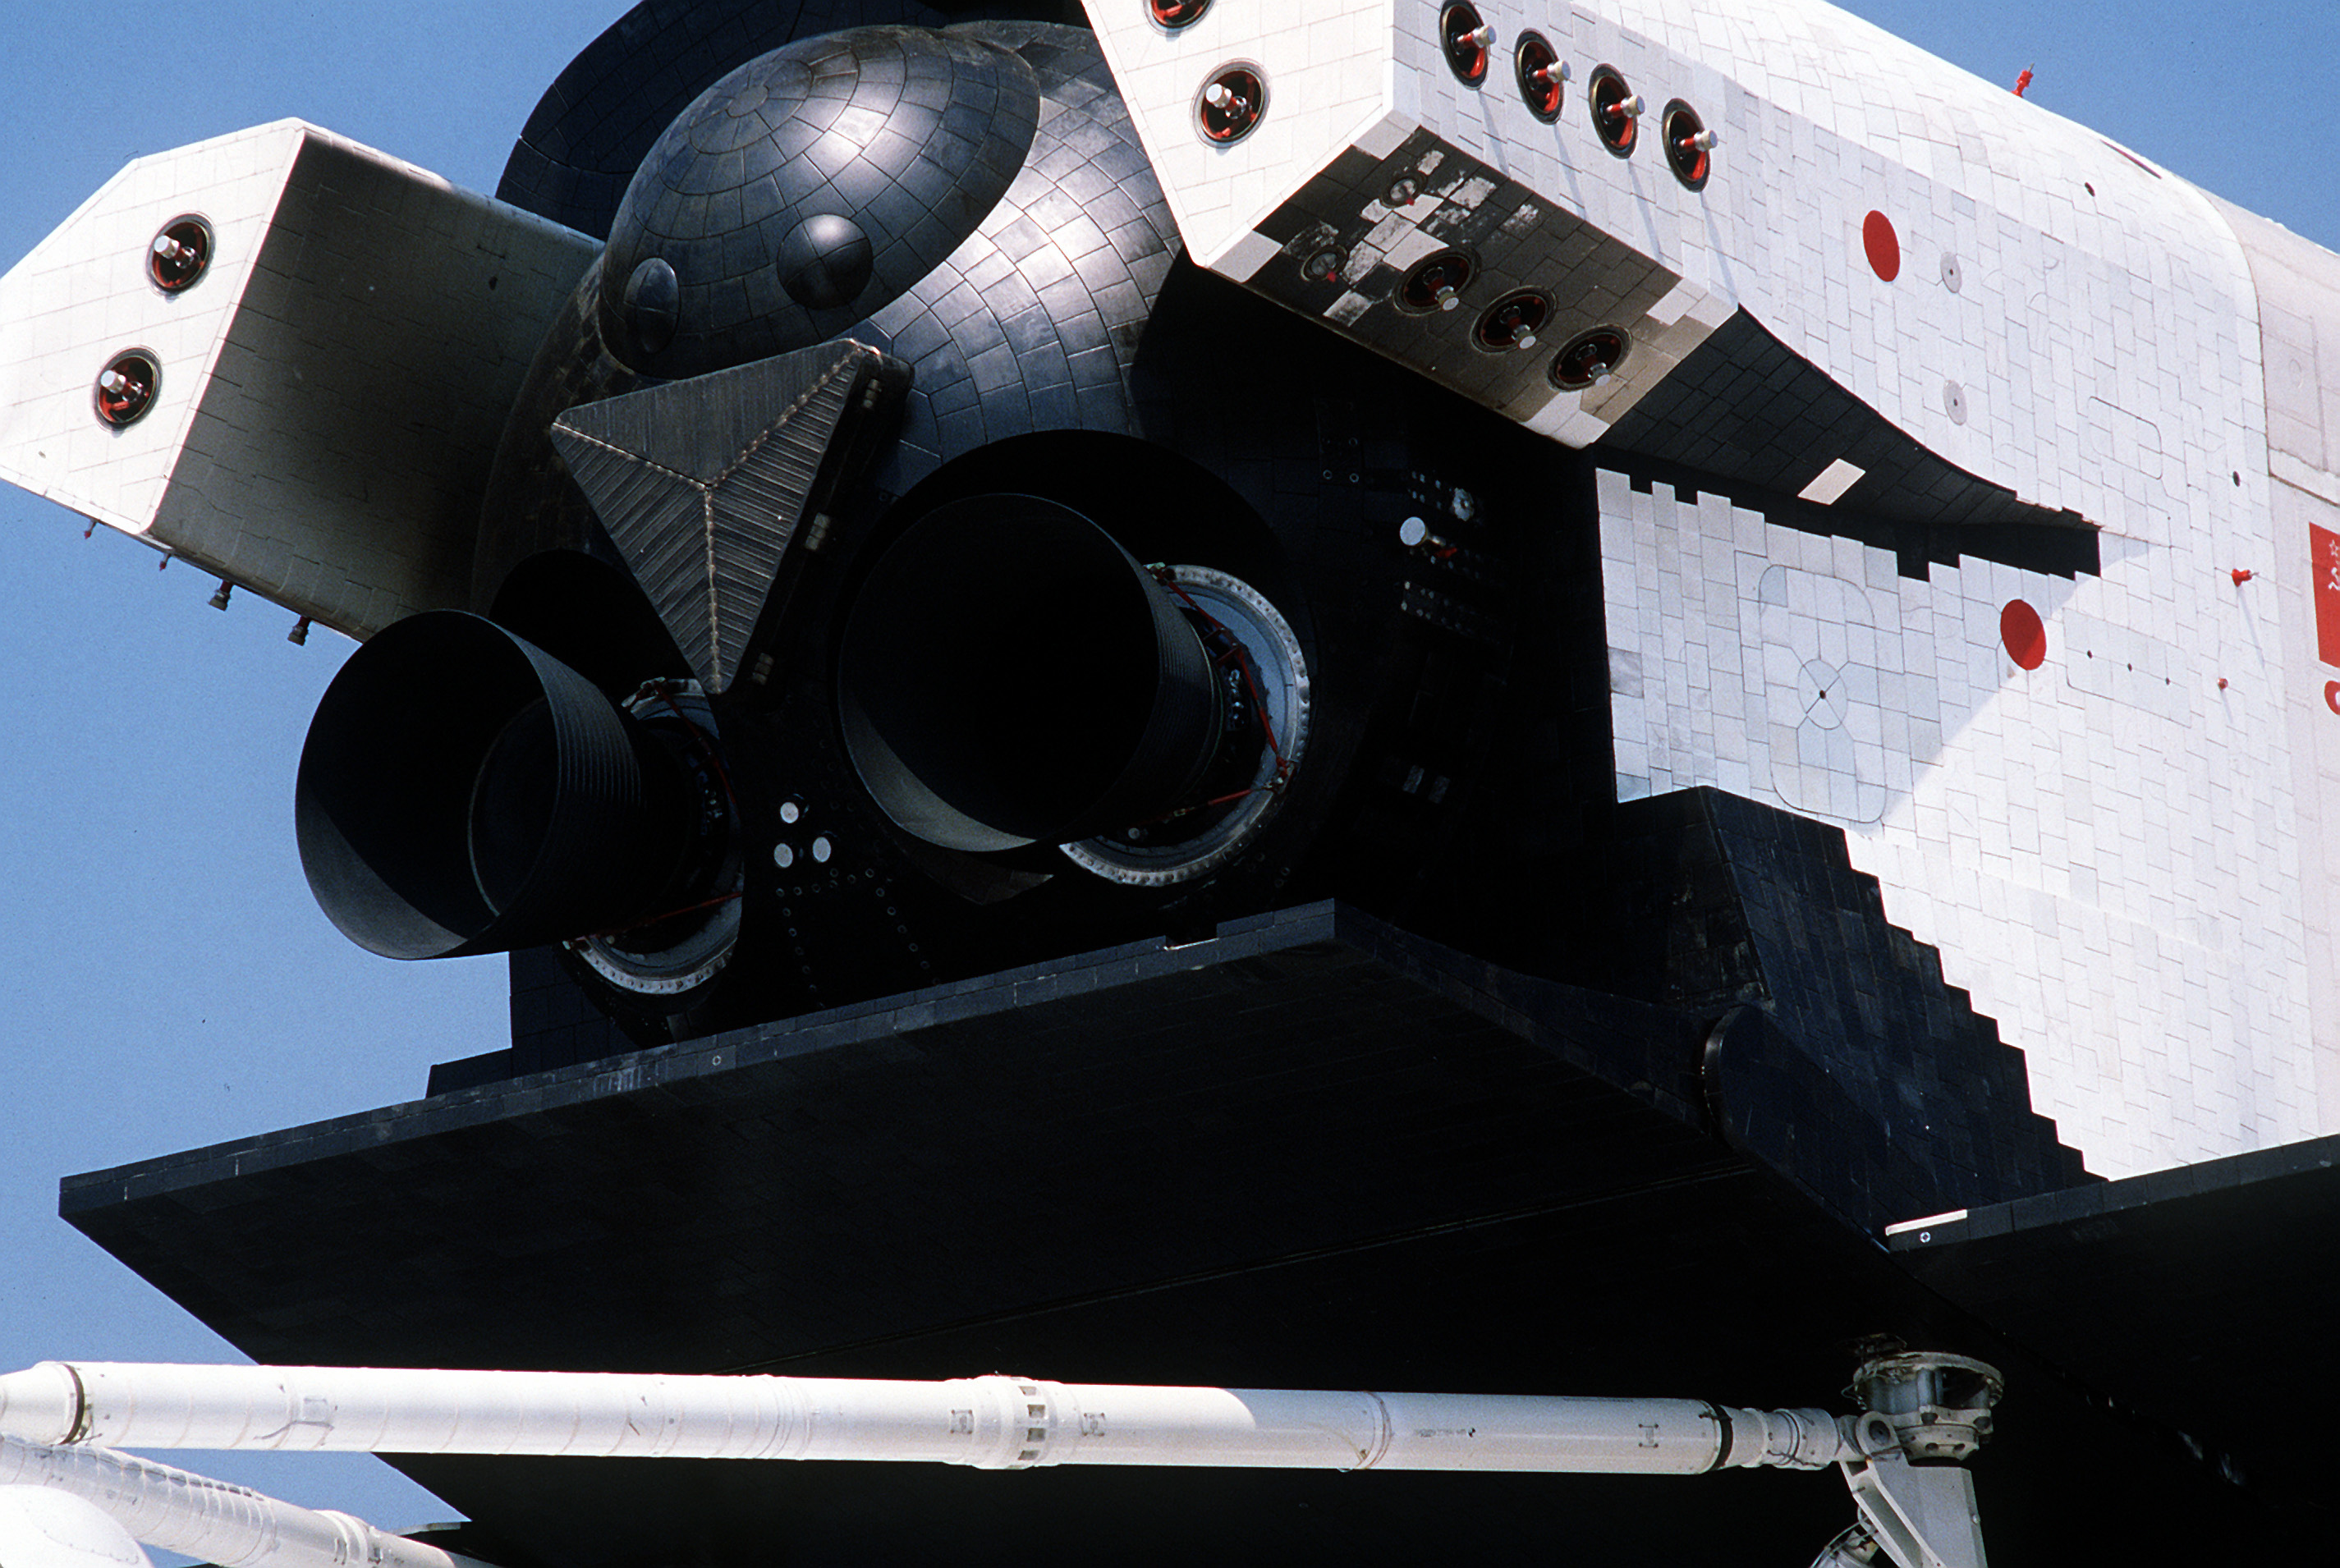 cb9c5855d1f483 File Buran partial rear view (Le Bourget 1989).JPEG - Wikimedia Commons